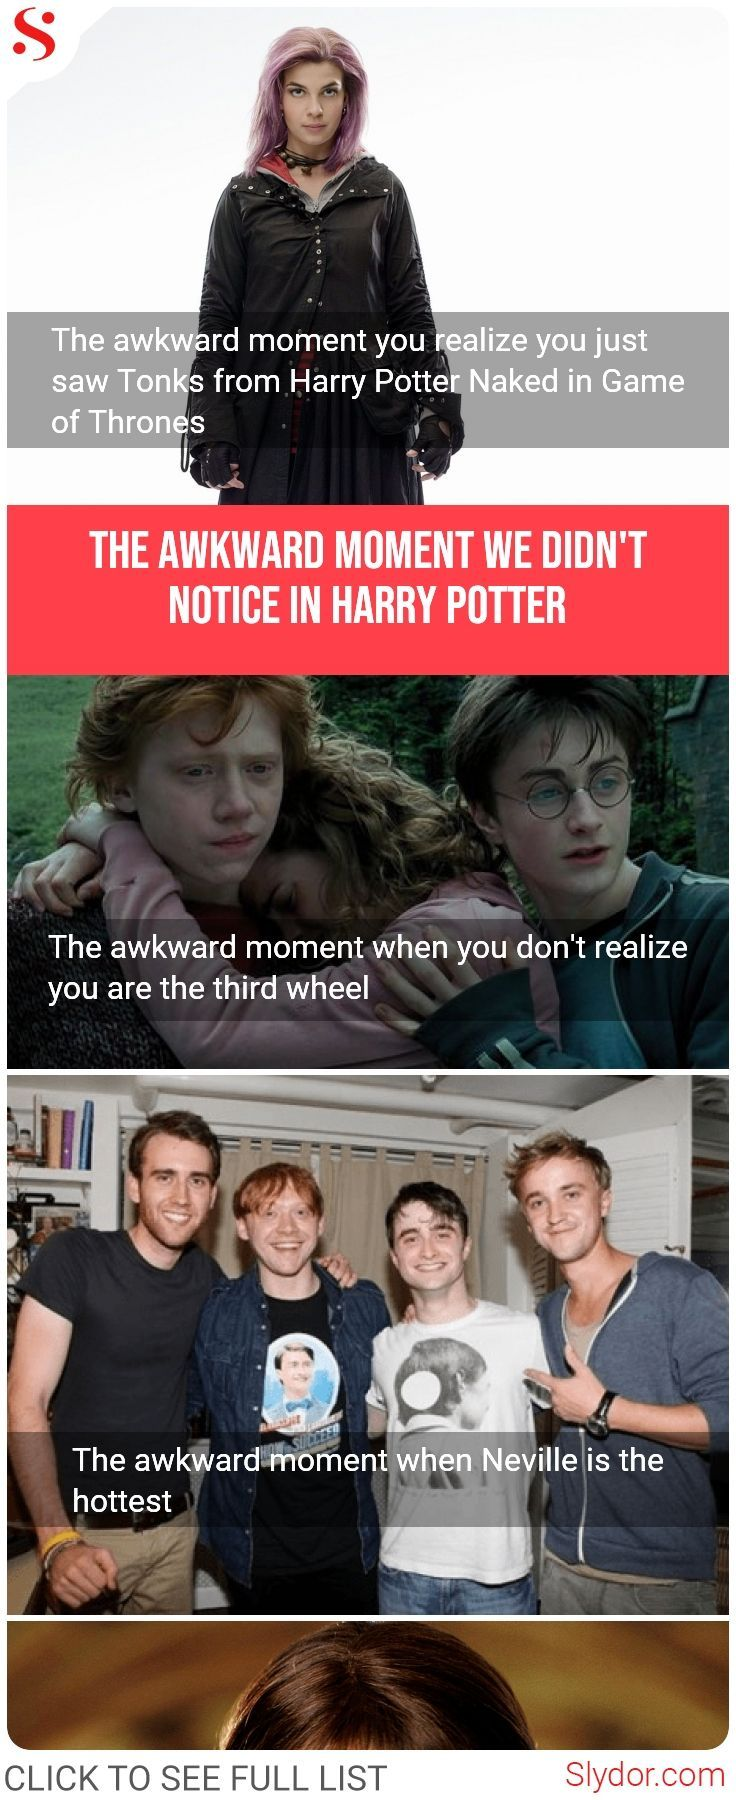 The Awkward Moment We Didn T Notice In Harry Potter Series Awkward Moment Harry Harrypotter Seri Harry Potter Series Harry Potter Funny Harry Potter Jokes